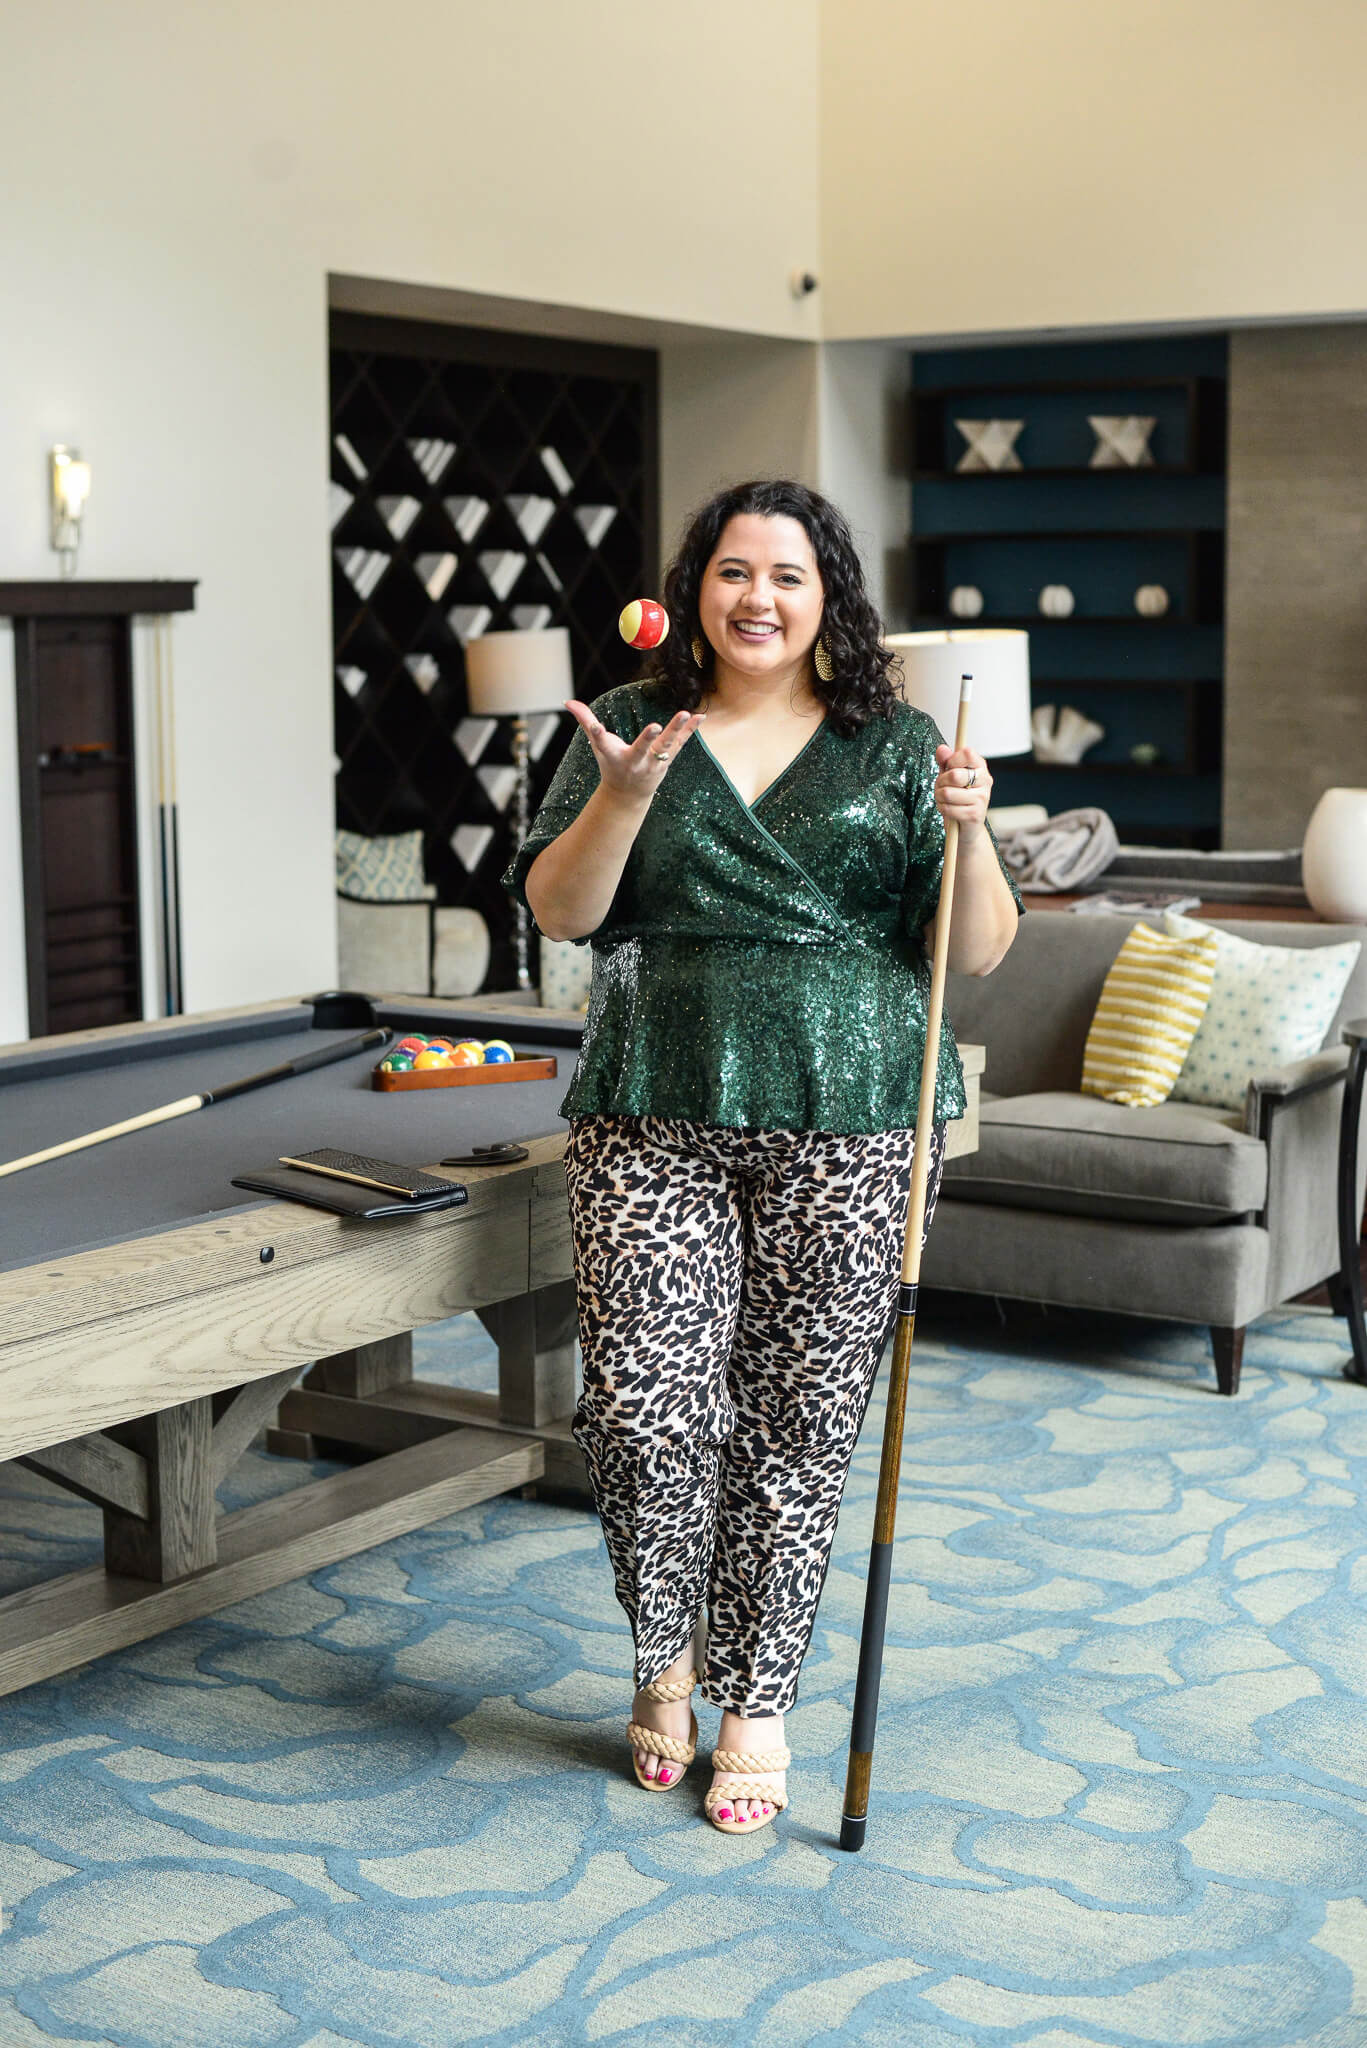 Lots of sparkle and a bold animal print makes for the perfect plus size pants